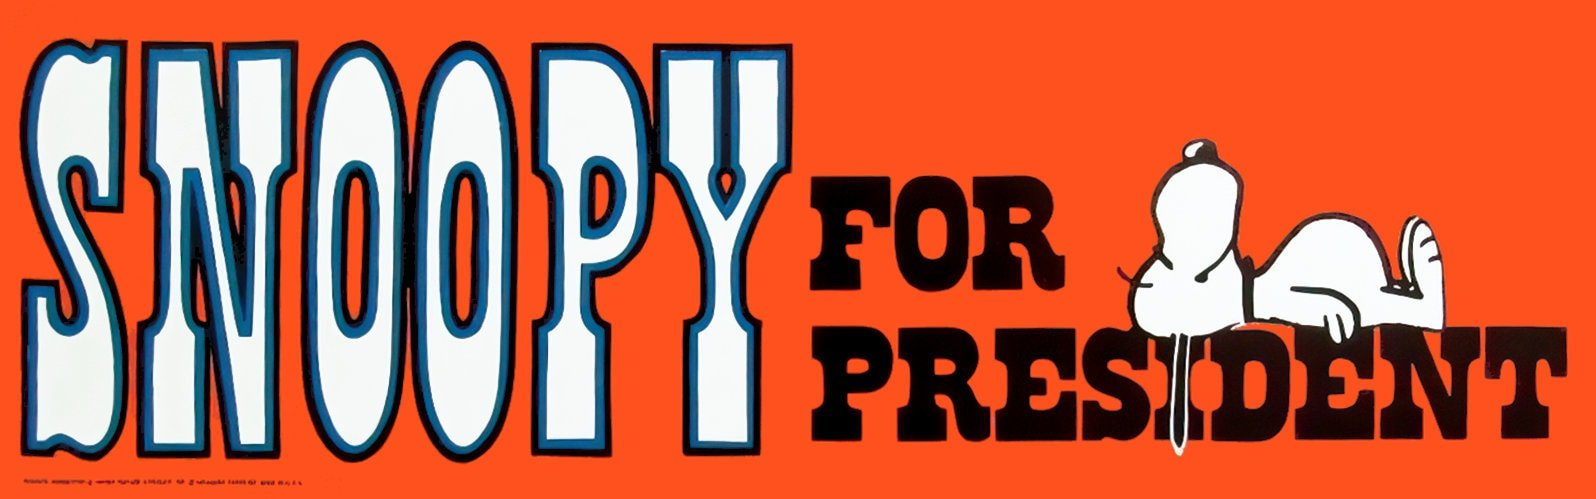 Old Peanuts - Snoopy for President bumper sticker